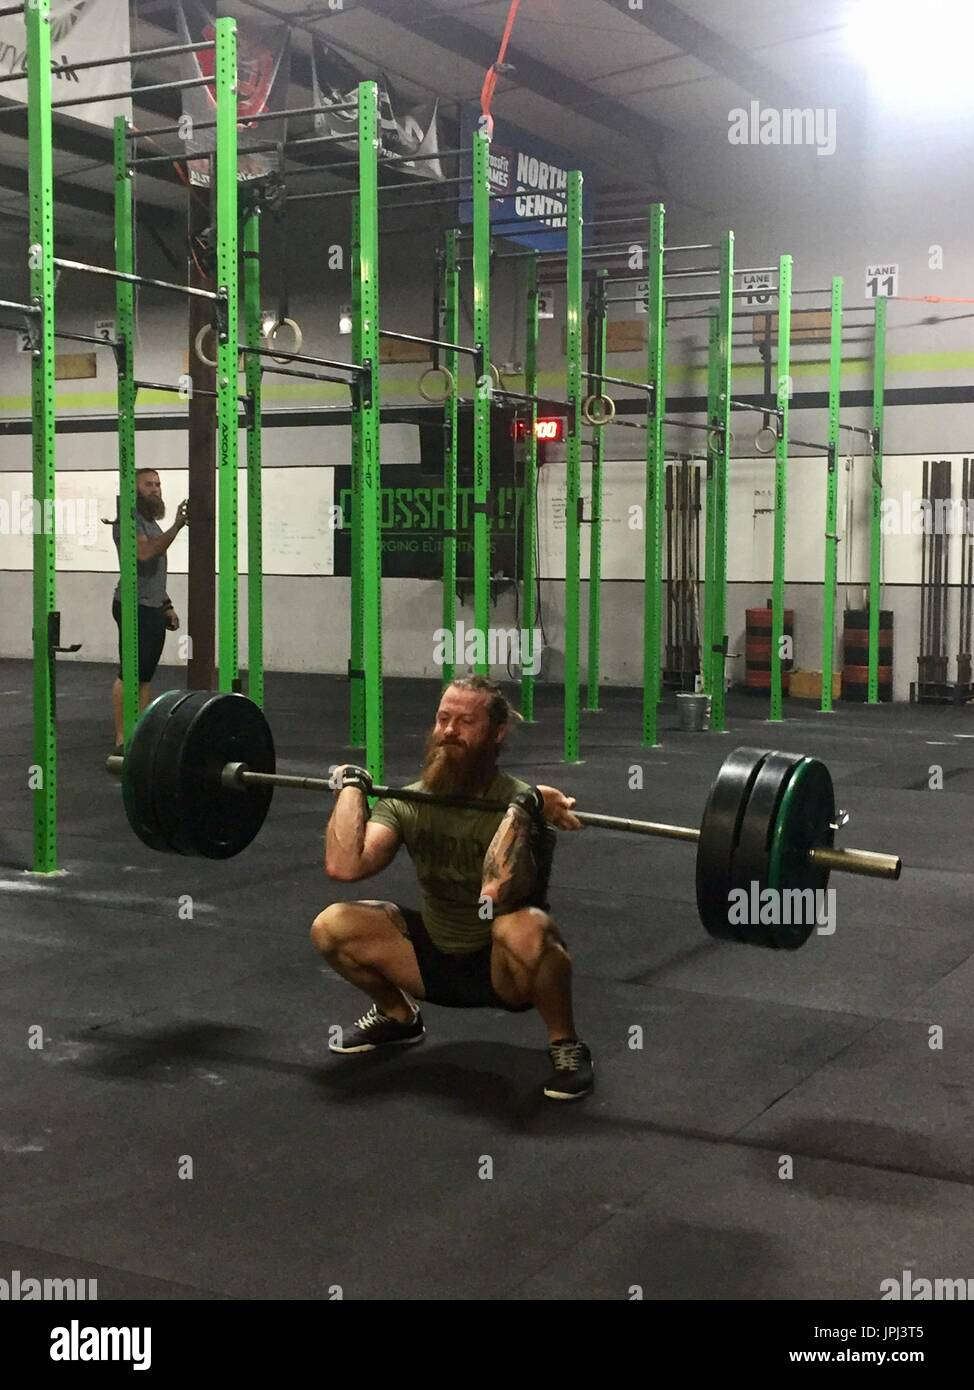 weightlifting - Stock Image